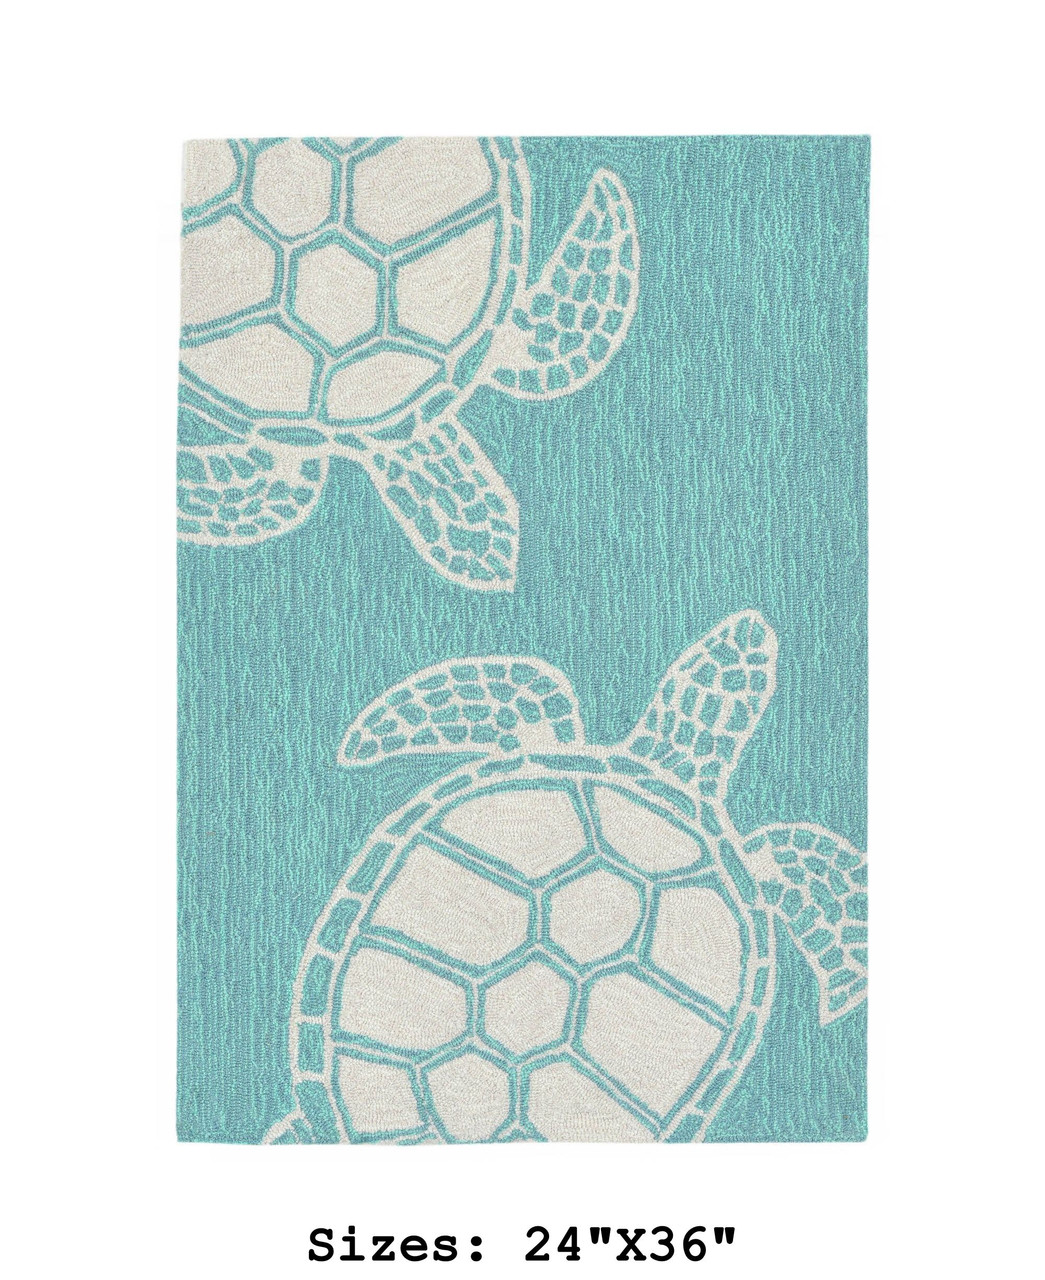 Capri Turtle Indoor/Outdoor Rug - Aqua - Small Rectangle Available in 6 Sizes